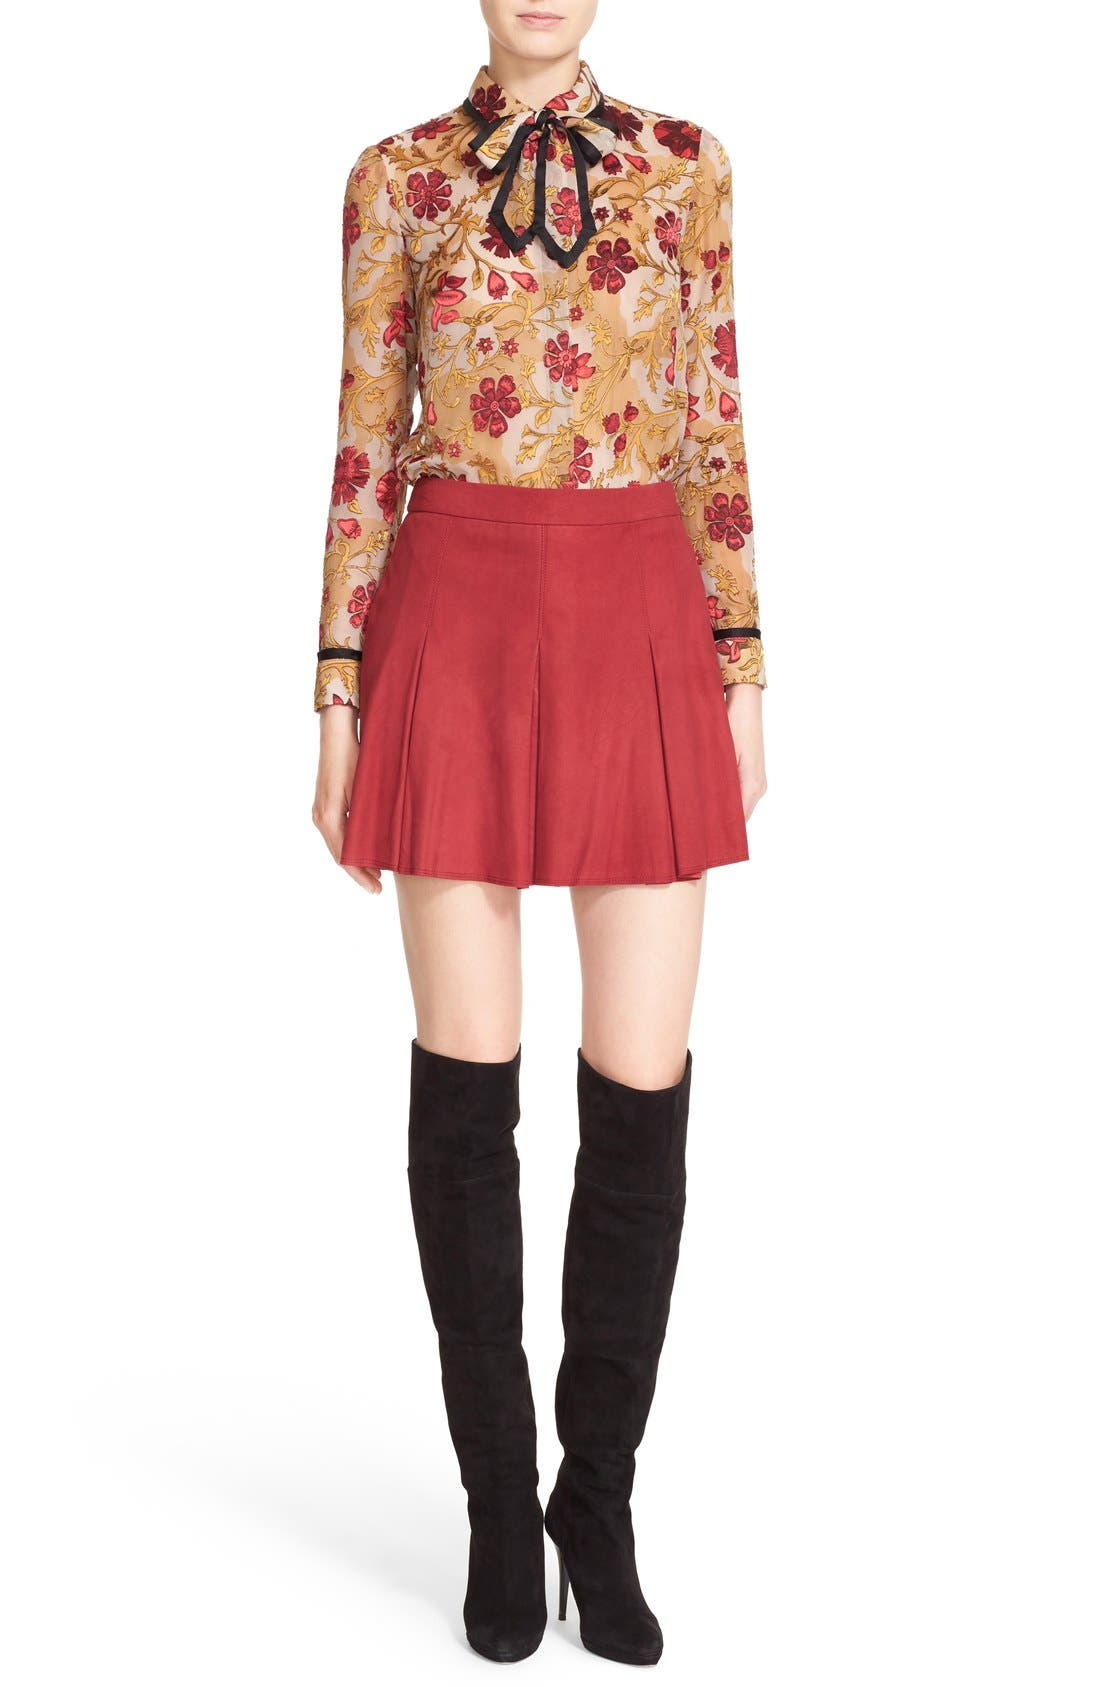 Alternate Image 1 Selected - Alice + Olivia 'Cora' Print Contrast Trim Tie Neck Blouse